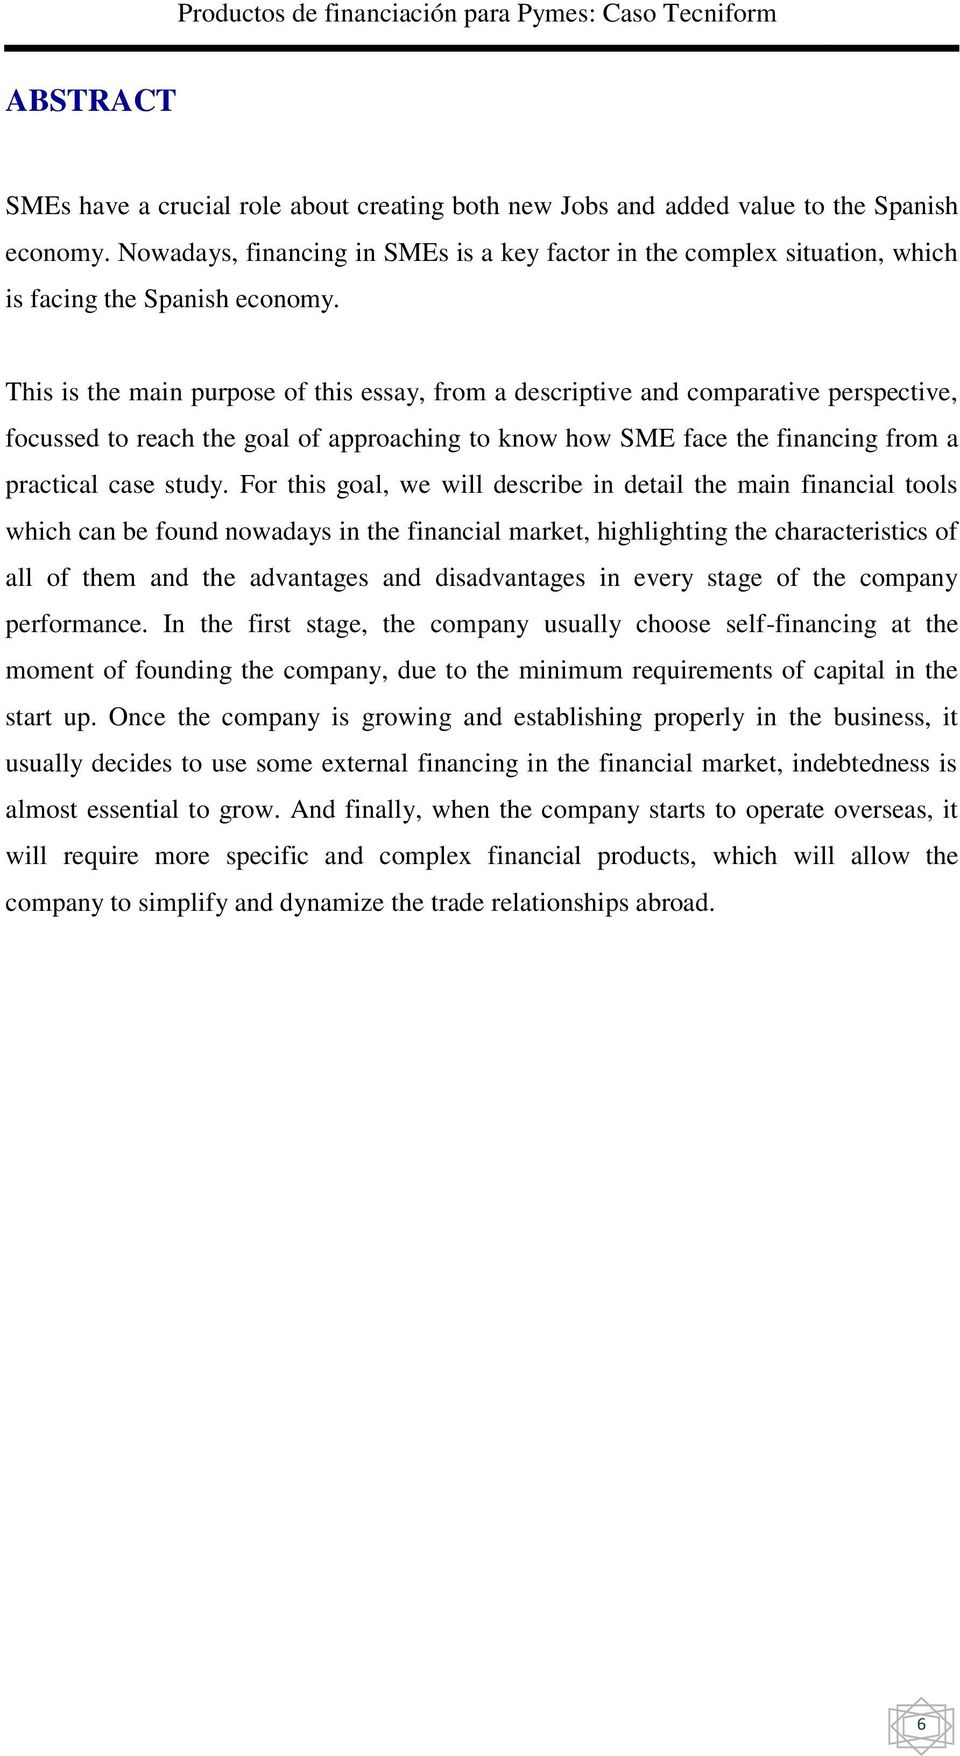 This is the main purpose of this essay, from a descriptive and comparative perspective, focussed to reach the goal of approaching to know how SME face the financing from a practical case study.